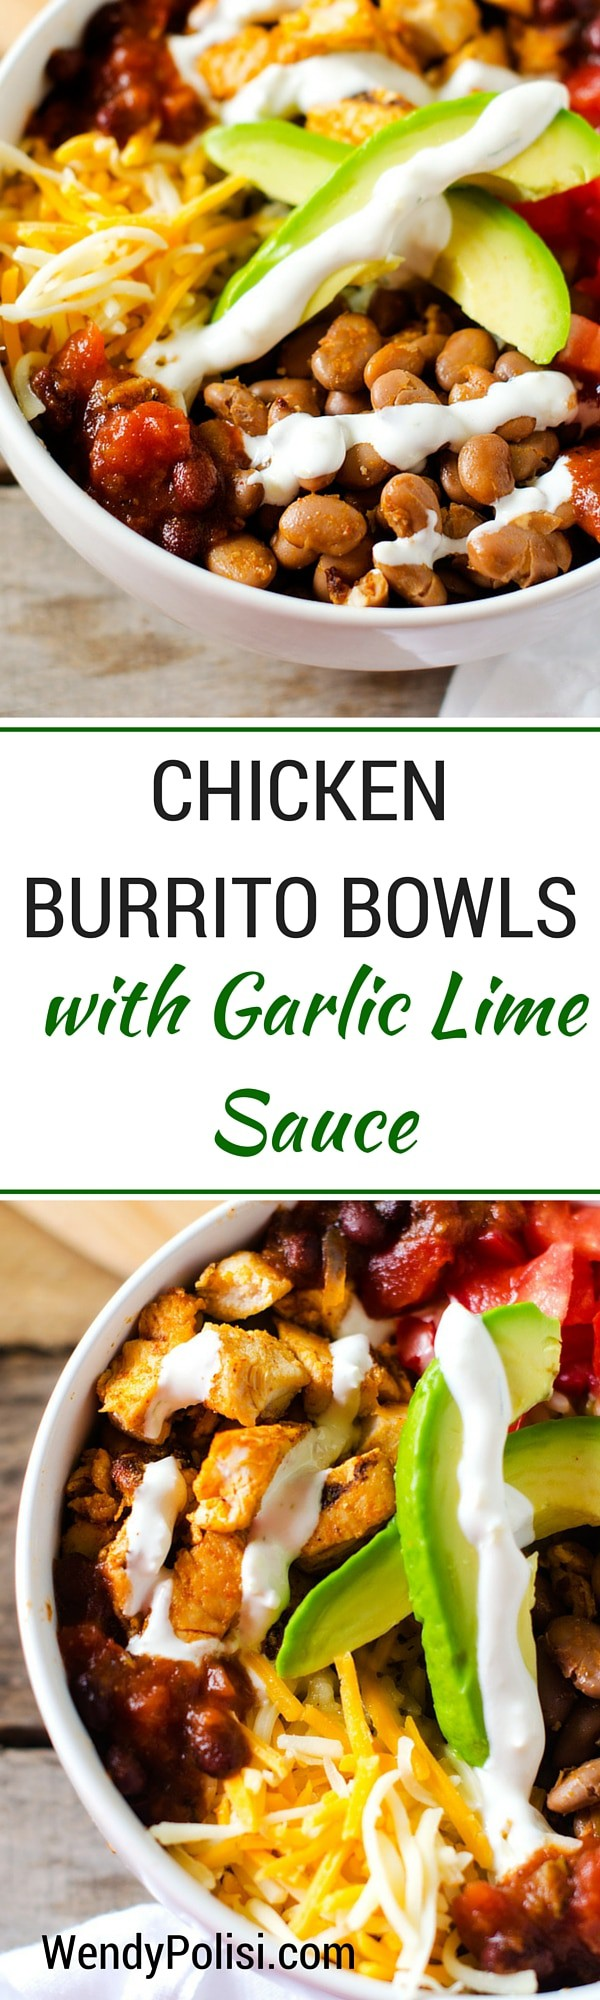 Chicken Burrito Bowls with Garlic Lime Sauce